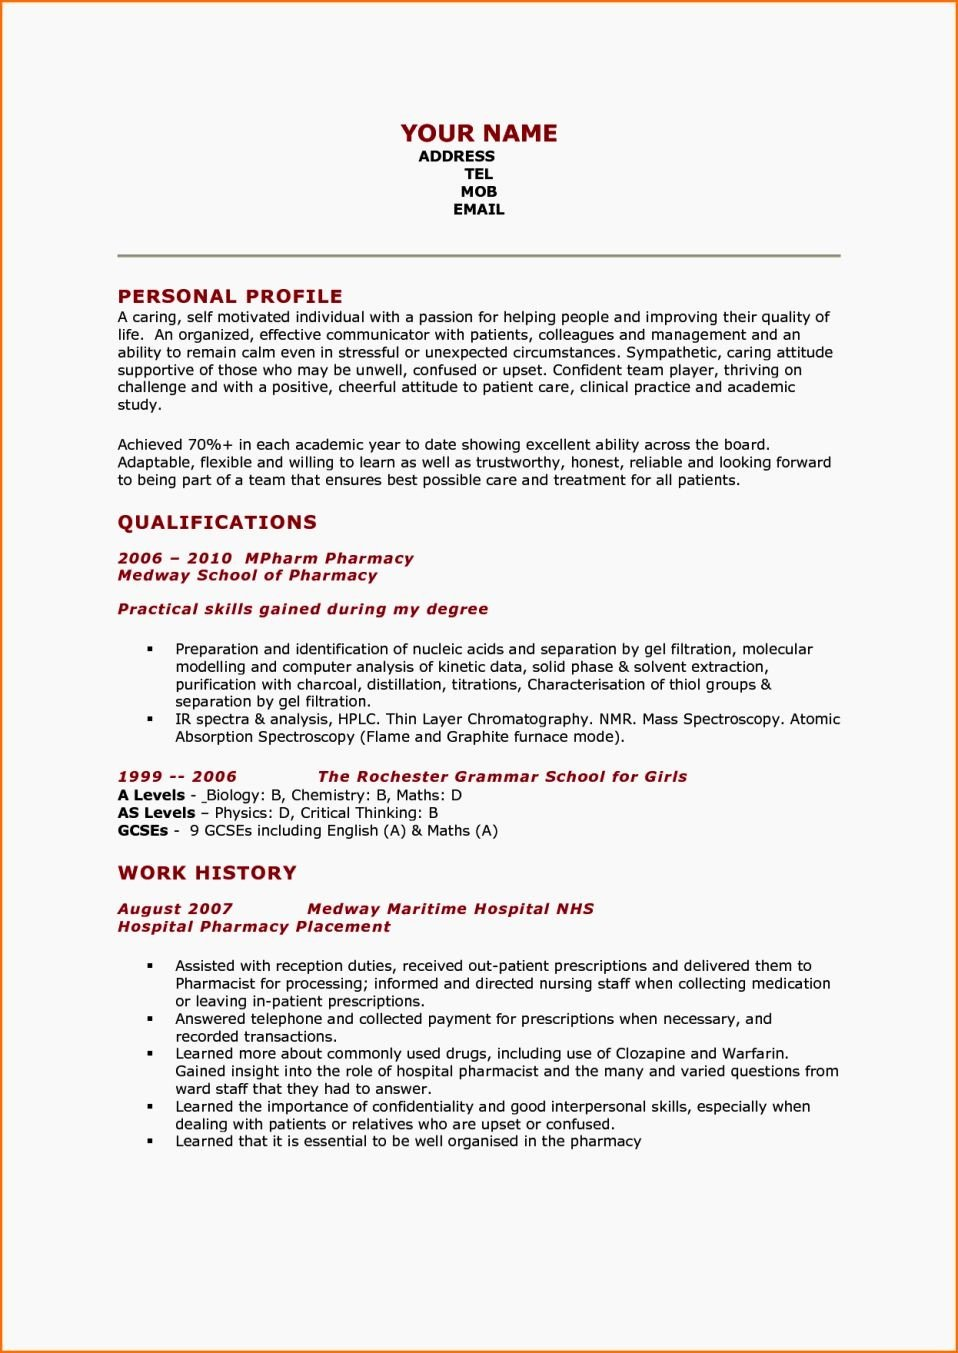 Pharmacy Curriculum Vitae Template Luxury Pharmacy Cv Examples Pharmacy Student Cv Example Resume